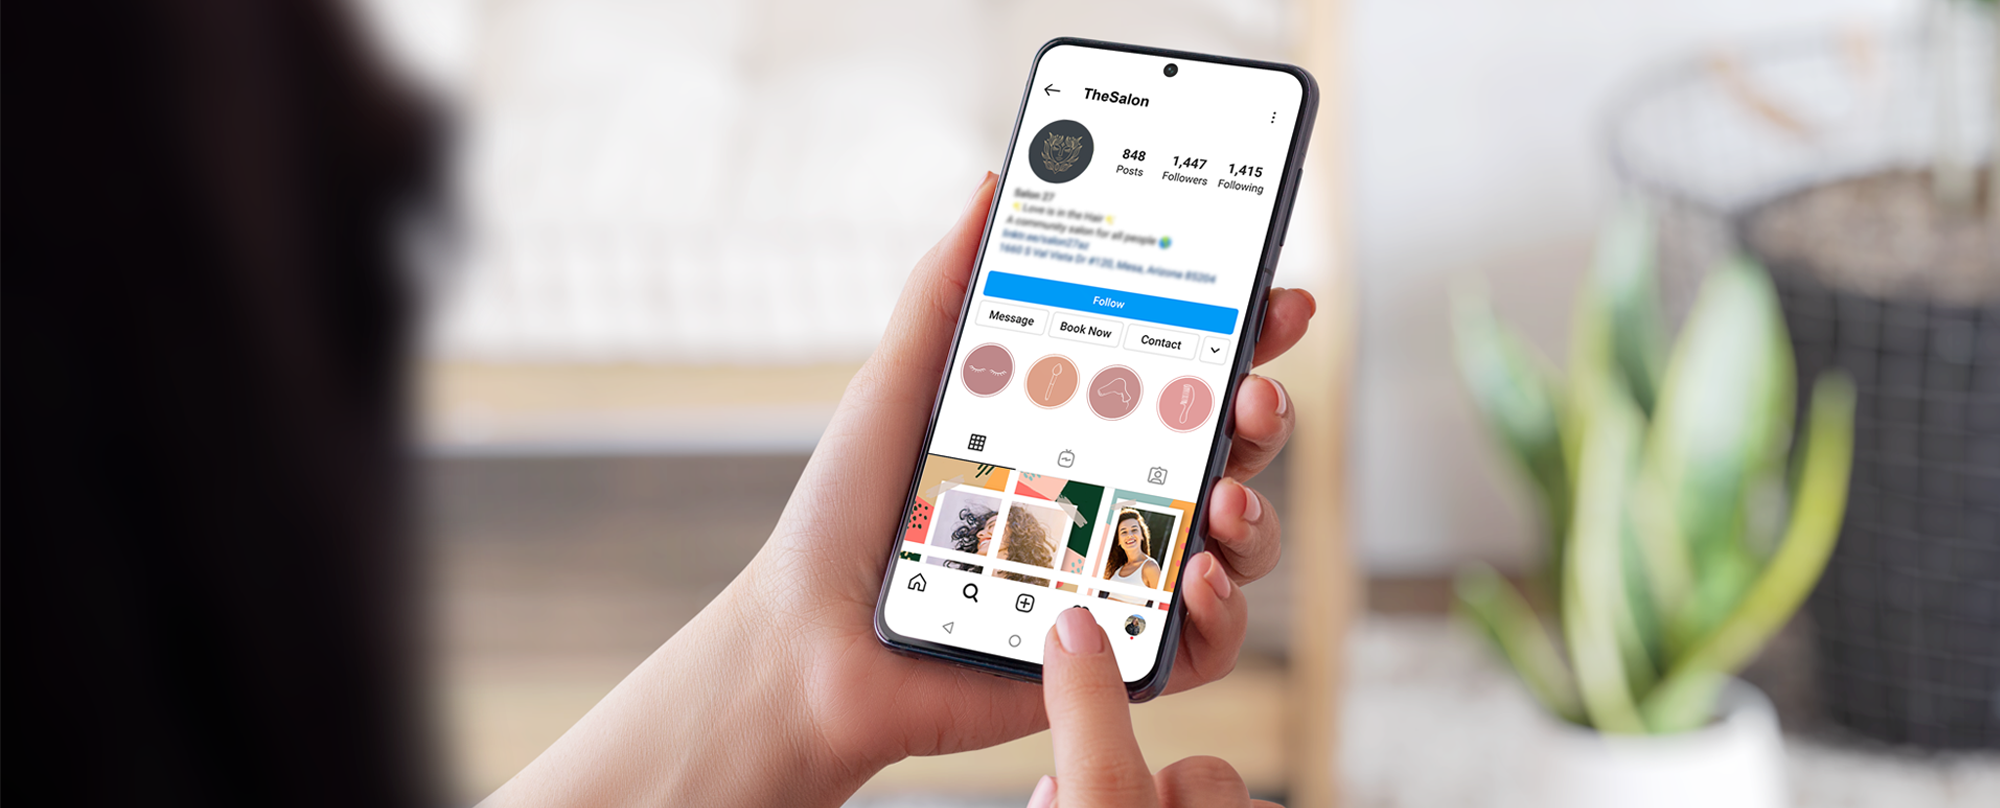 200 Million Instagram Users Check Business Profiles Daily – Are Your Clients Able to Book as They Scroll?